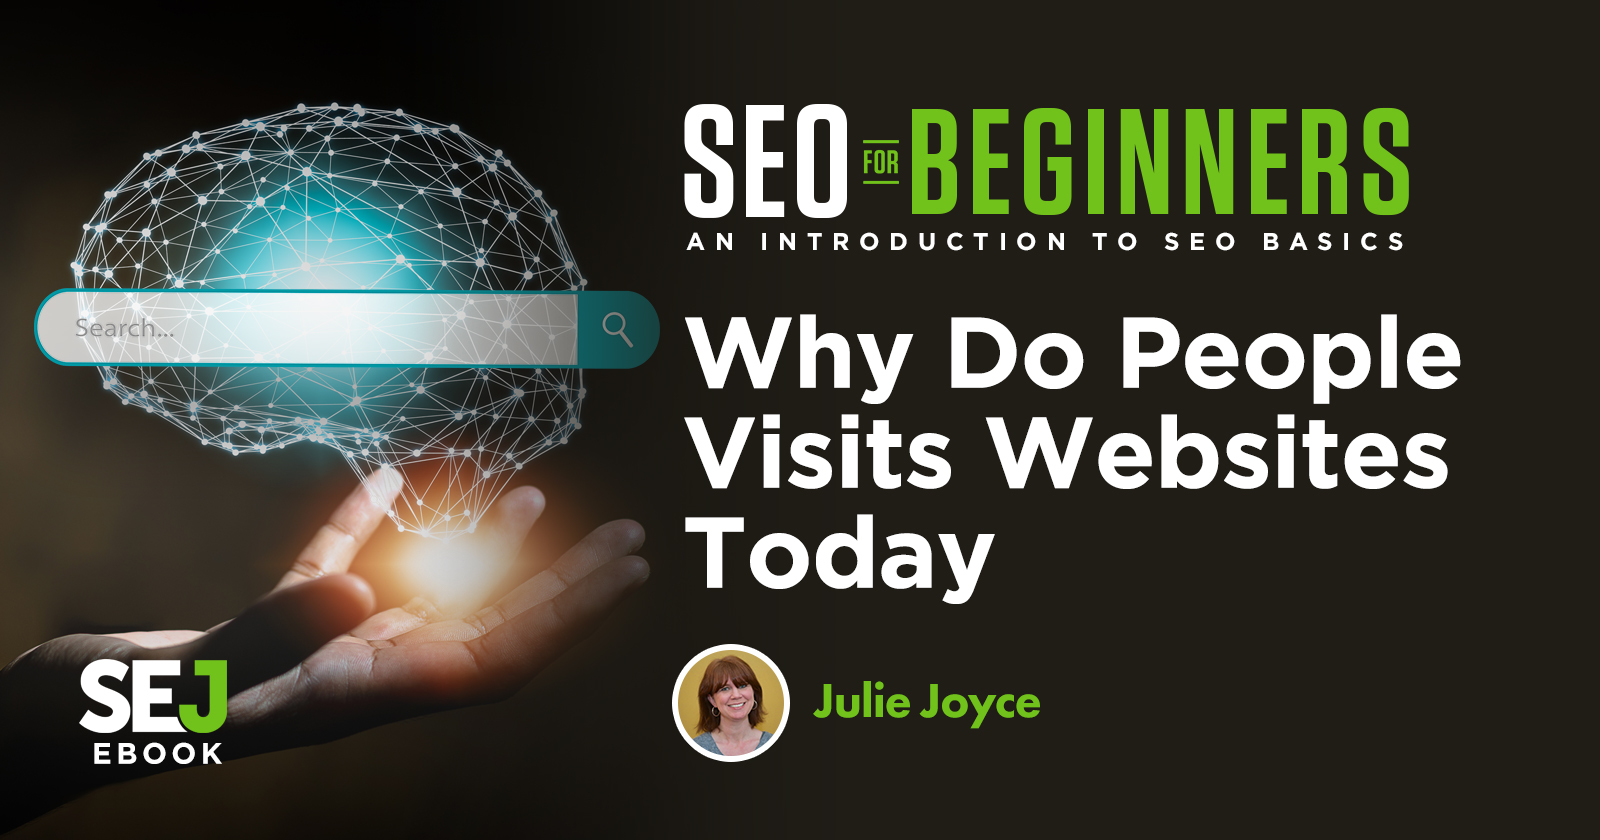 Why Do People Visit Websites Today? via @JulieJoyce